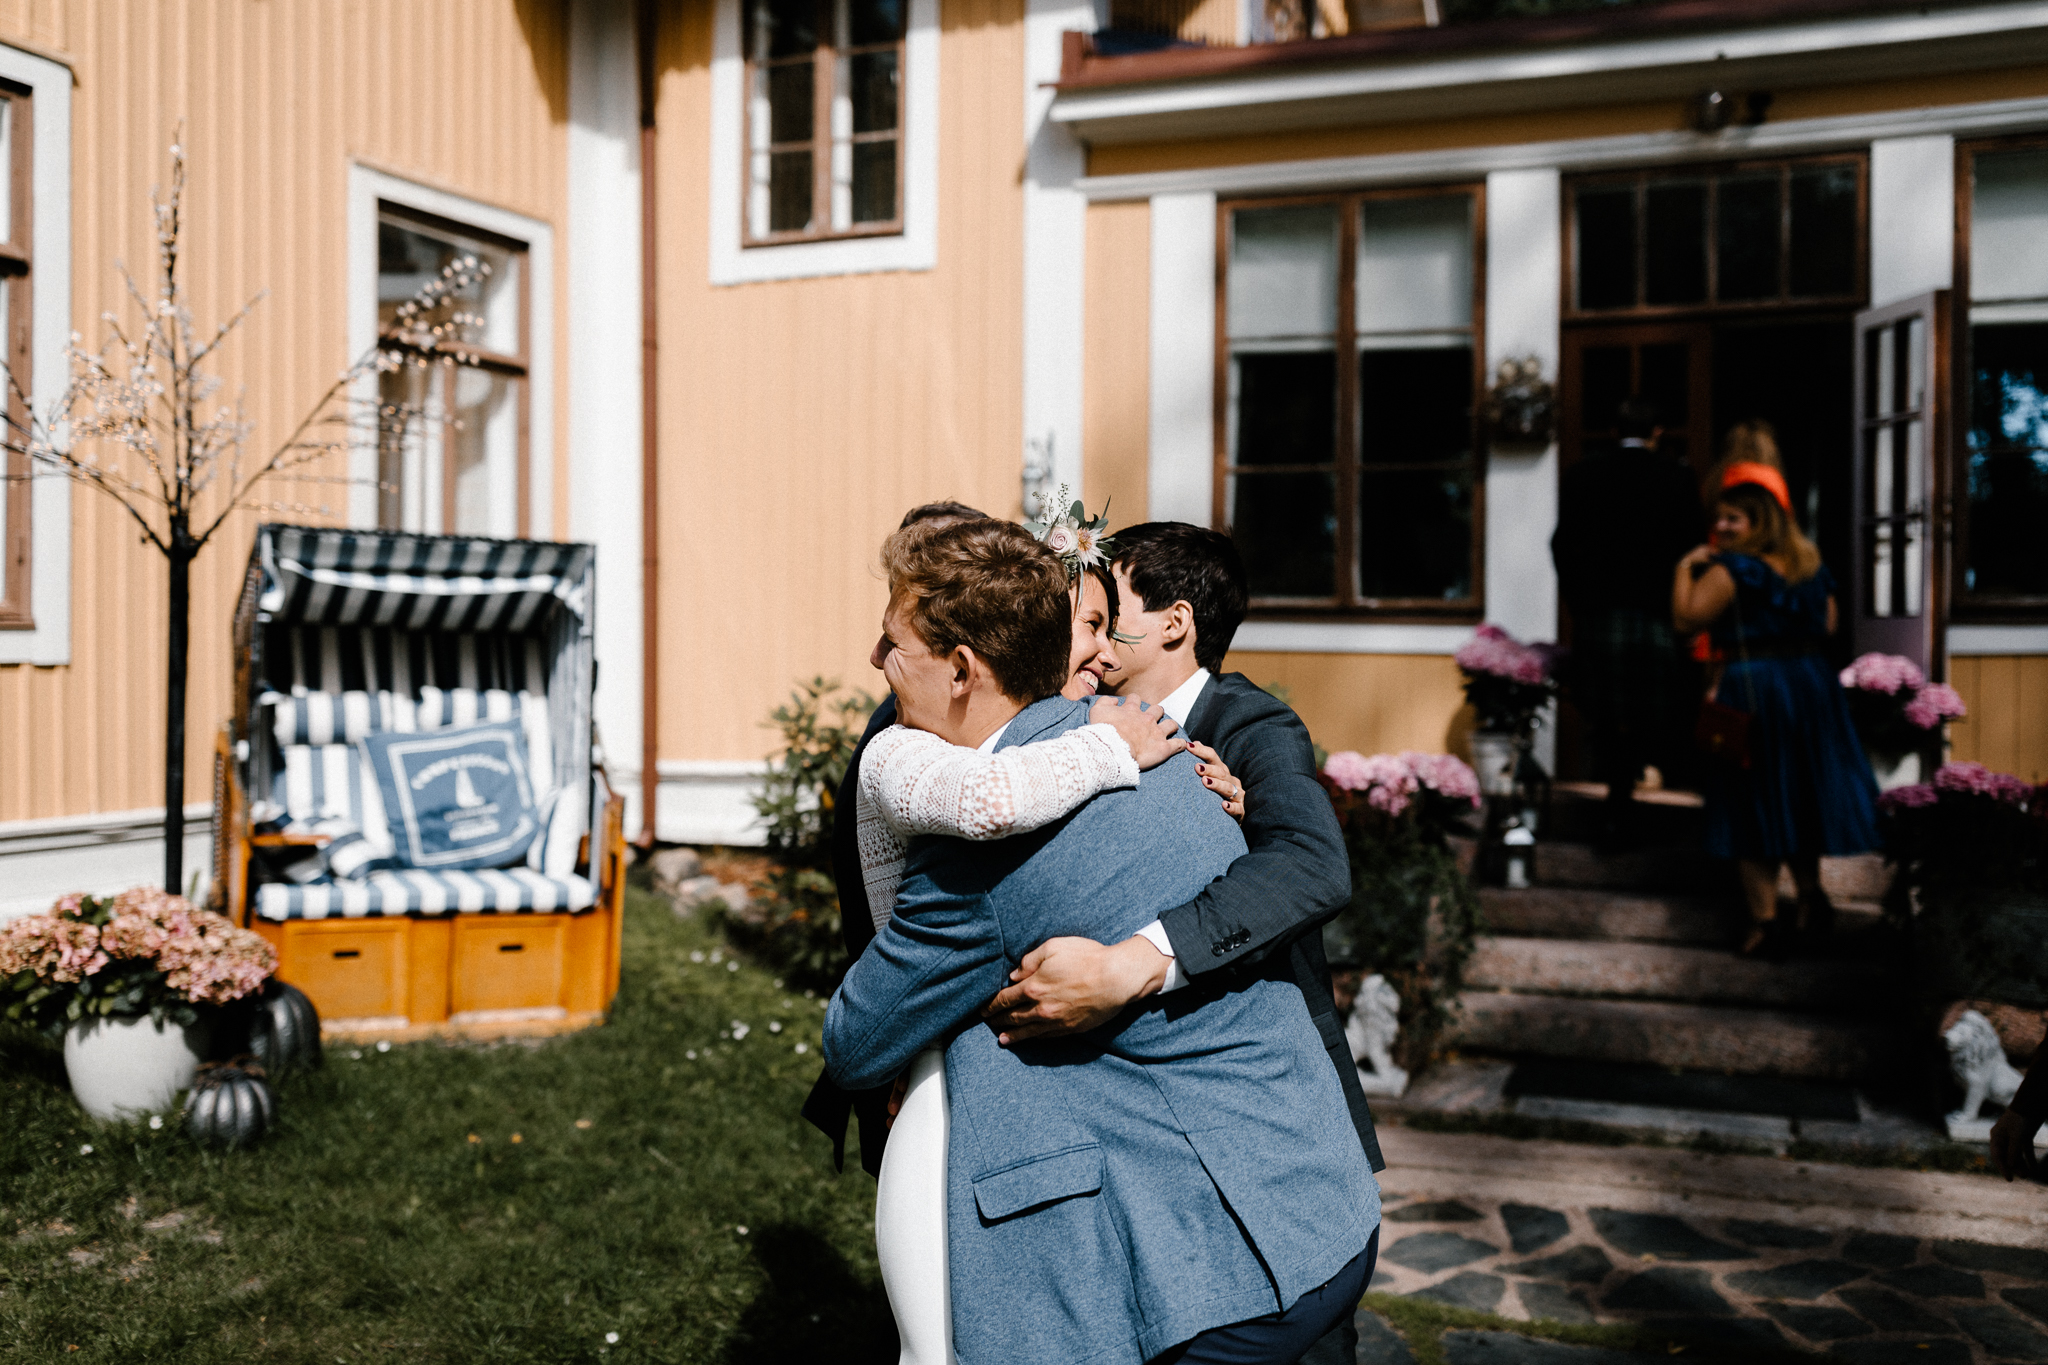 Julien + Johanna | Villa Ivan Falin | by Patrick Karkkolainen Wedding Photography-171.jpg